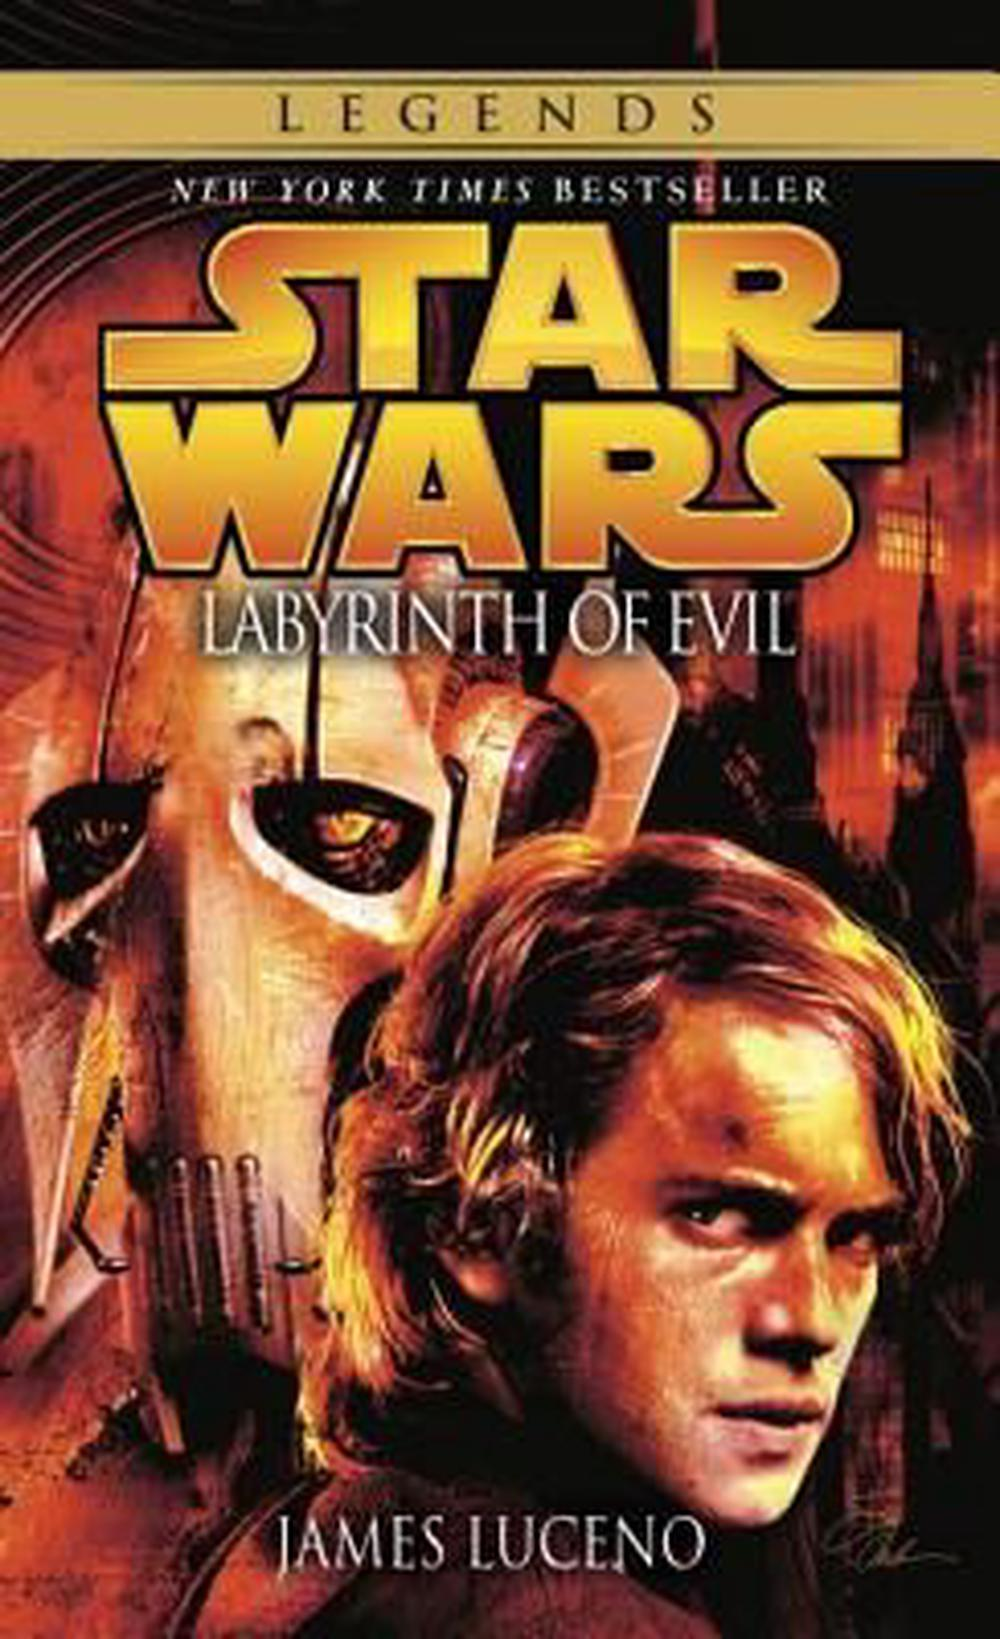 Star Wars Labyrinth of Evil by James Luceno, ISBN: 9780345475732